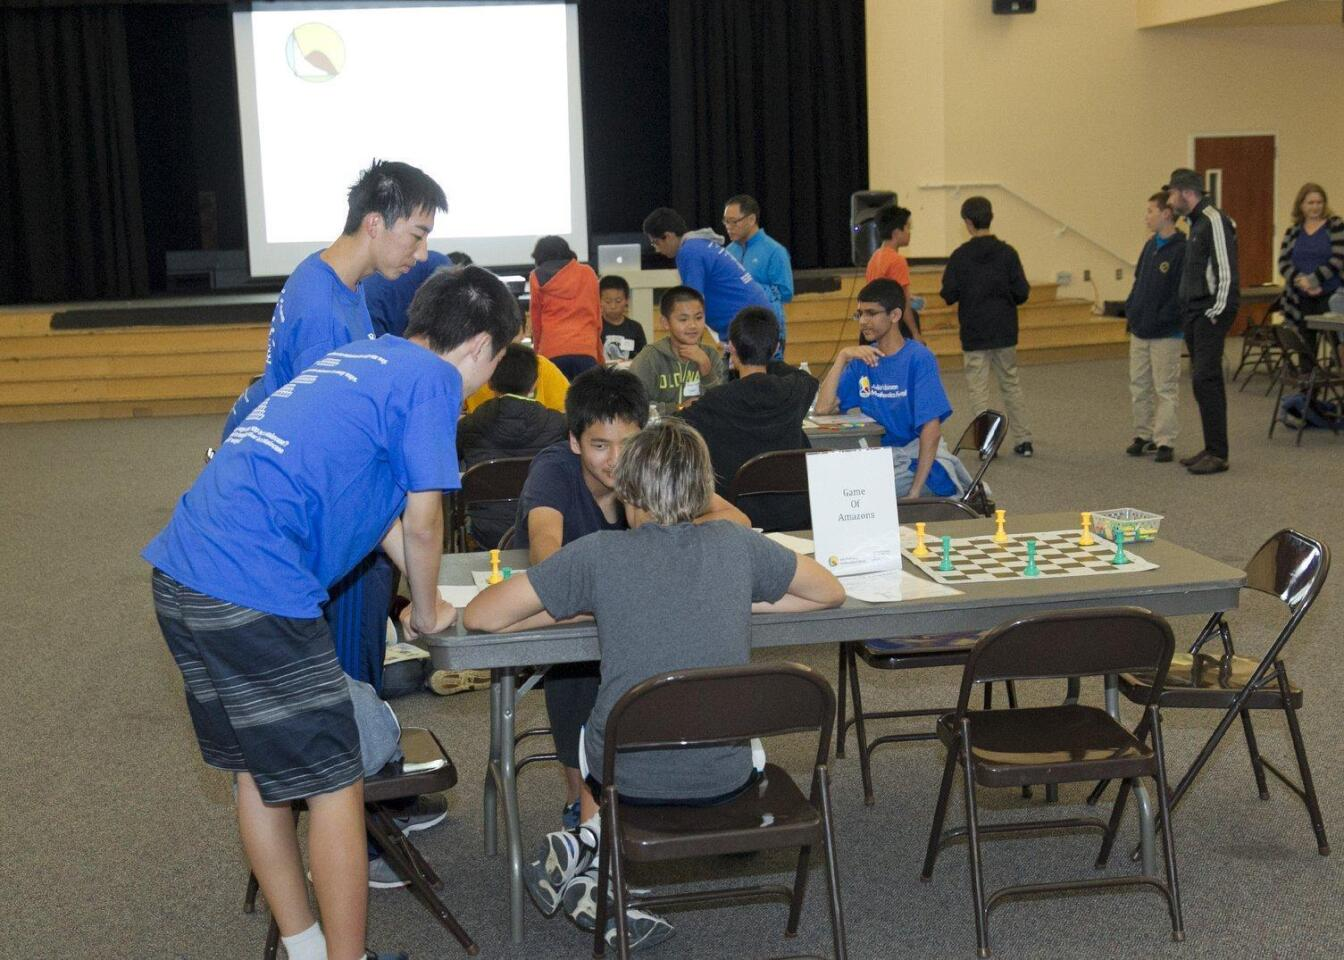 Julia Robinson Mathematics Festival held at Carmel Valley Middle School